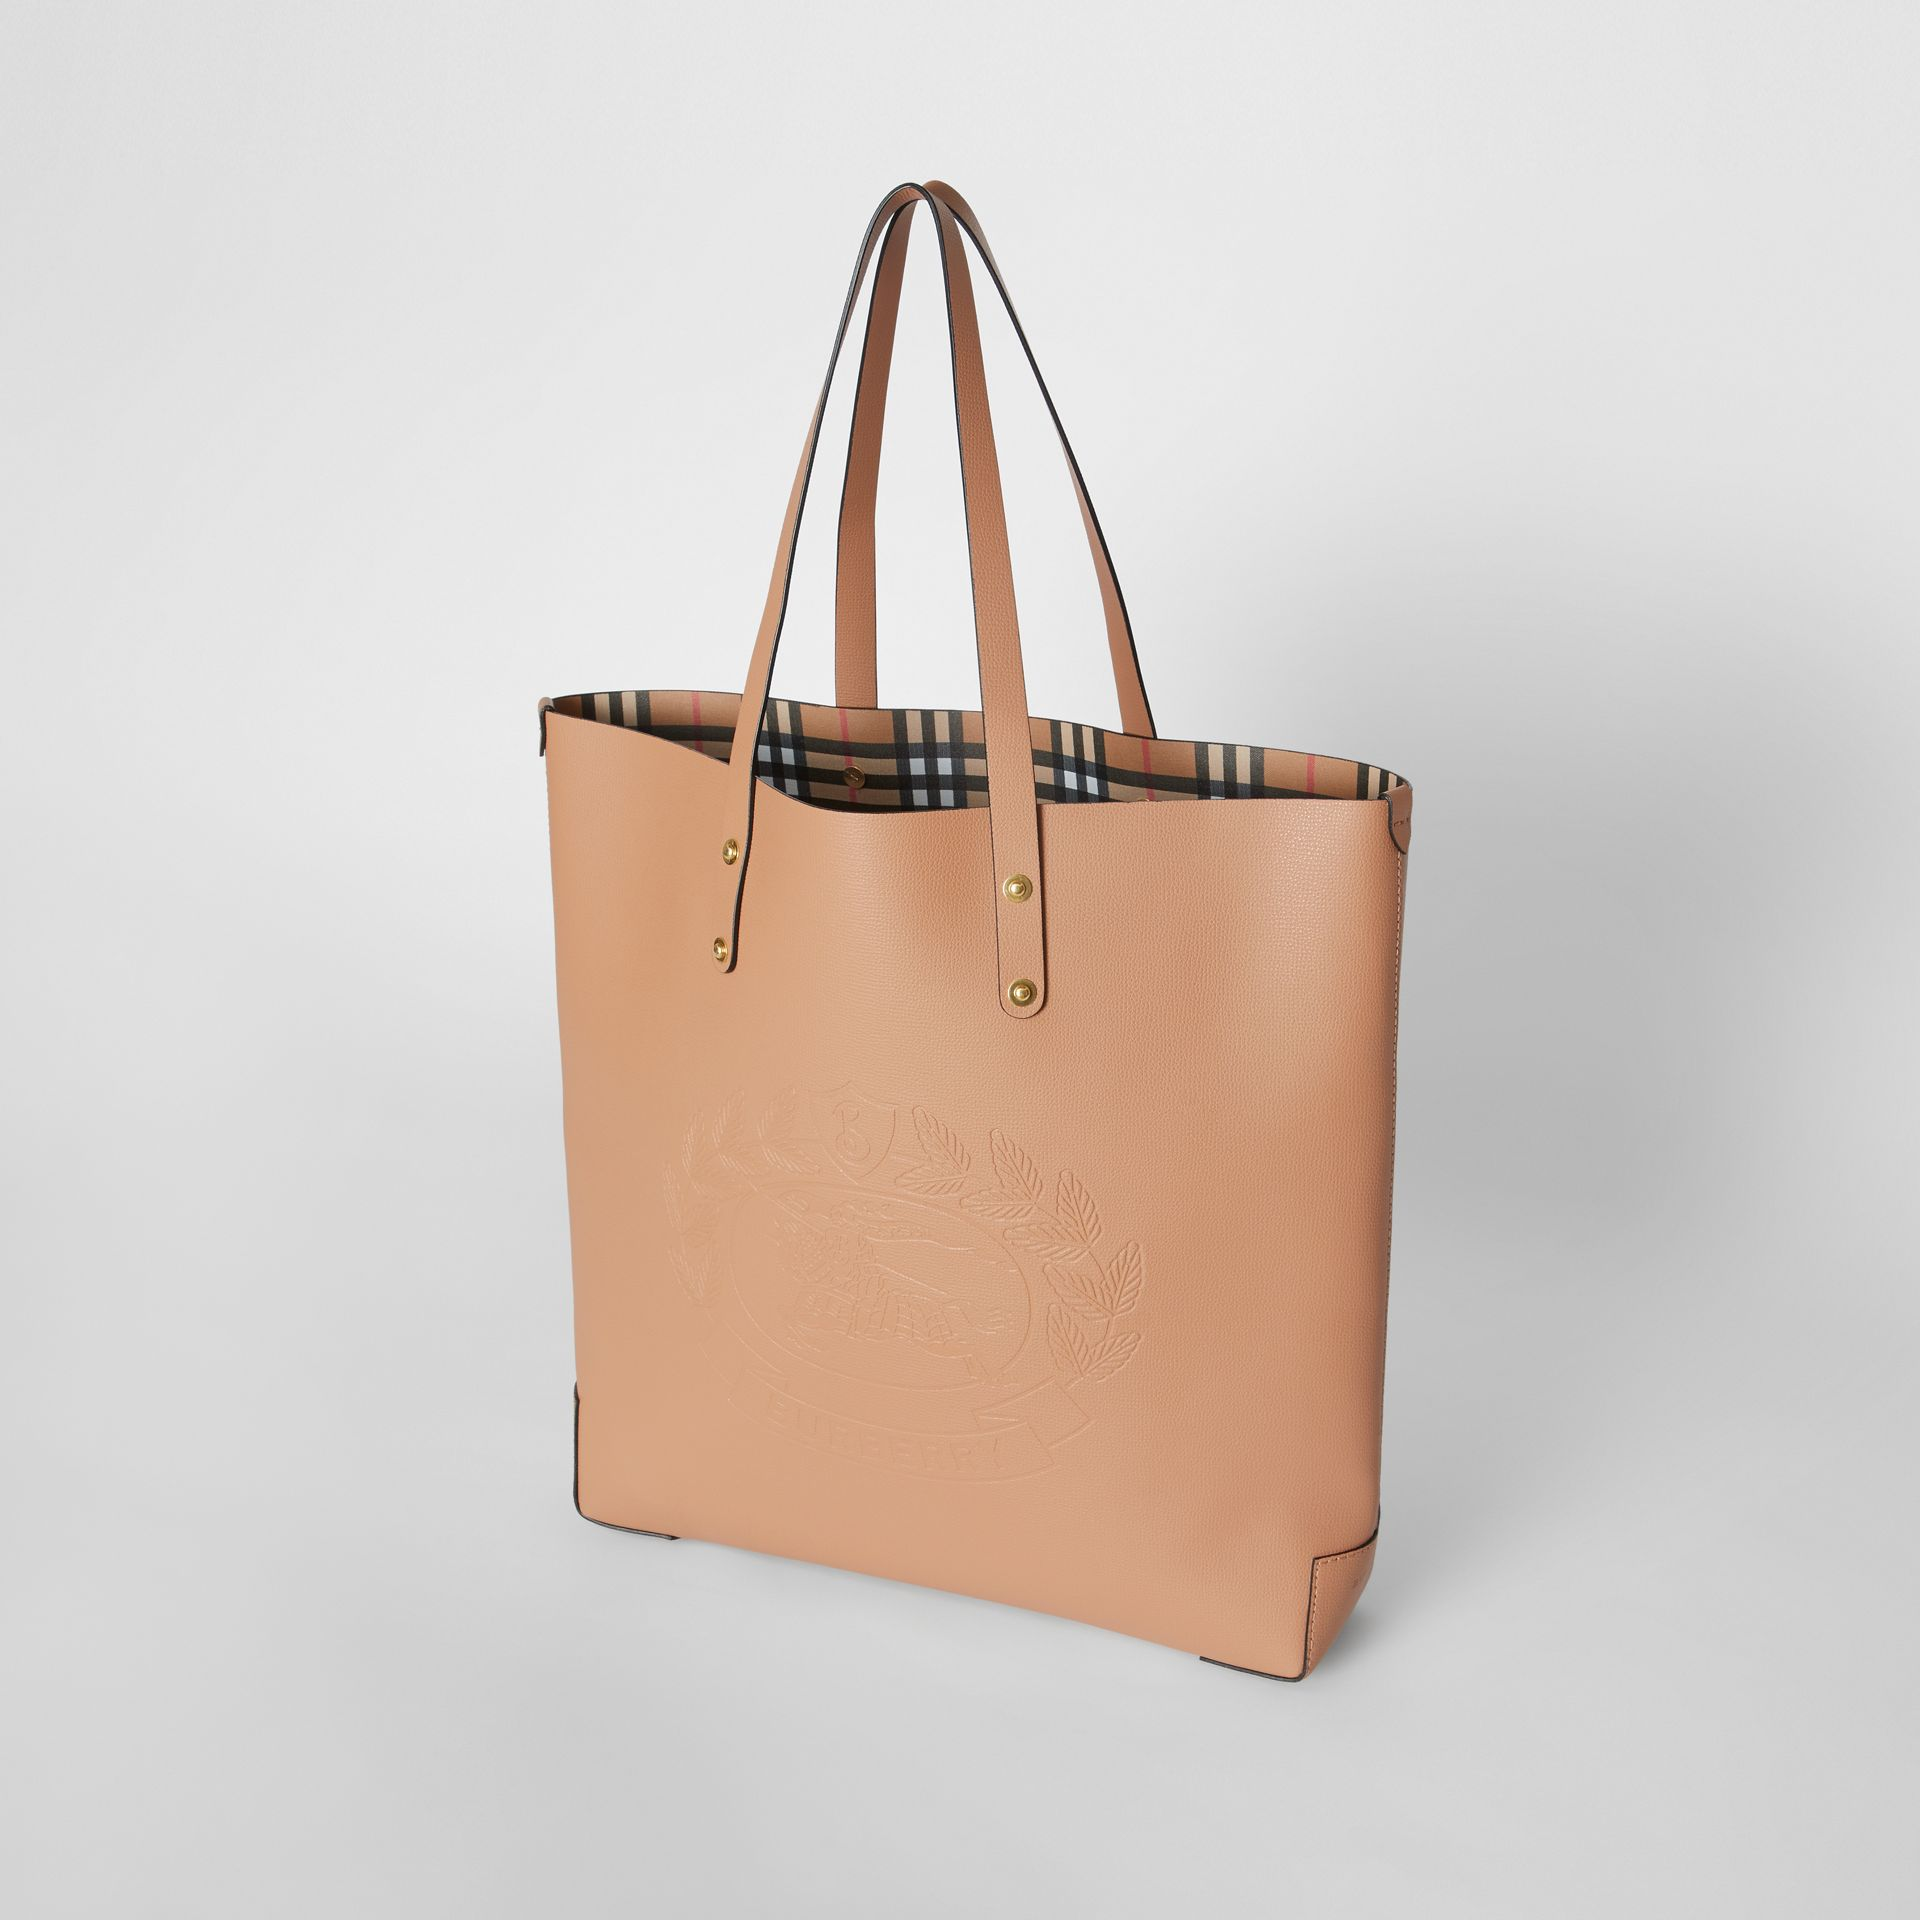 Embossed Crest Leather Tote in Light Camel - Women | Burberry - gallery image 2